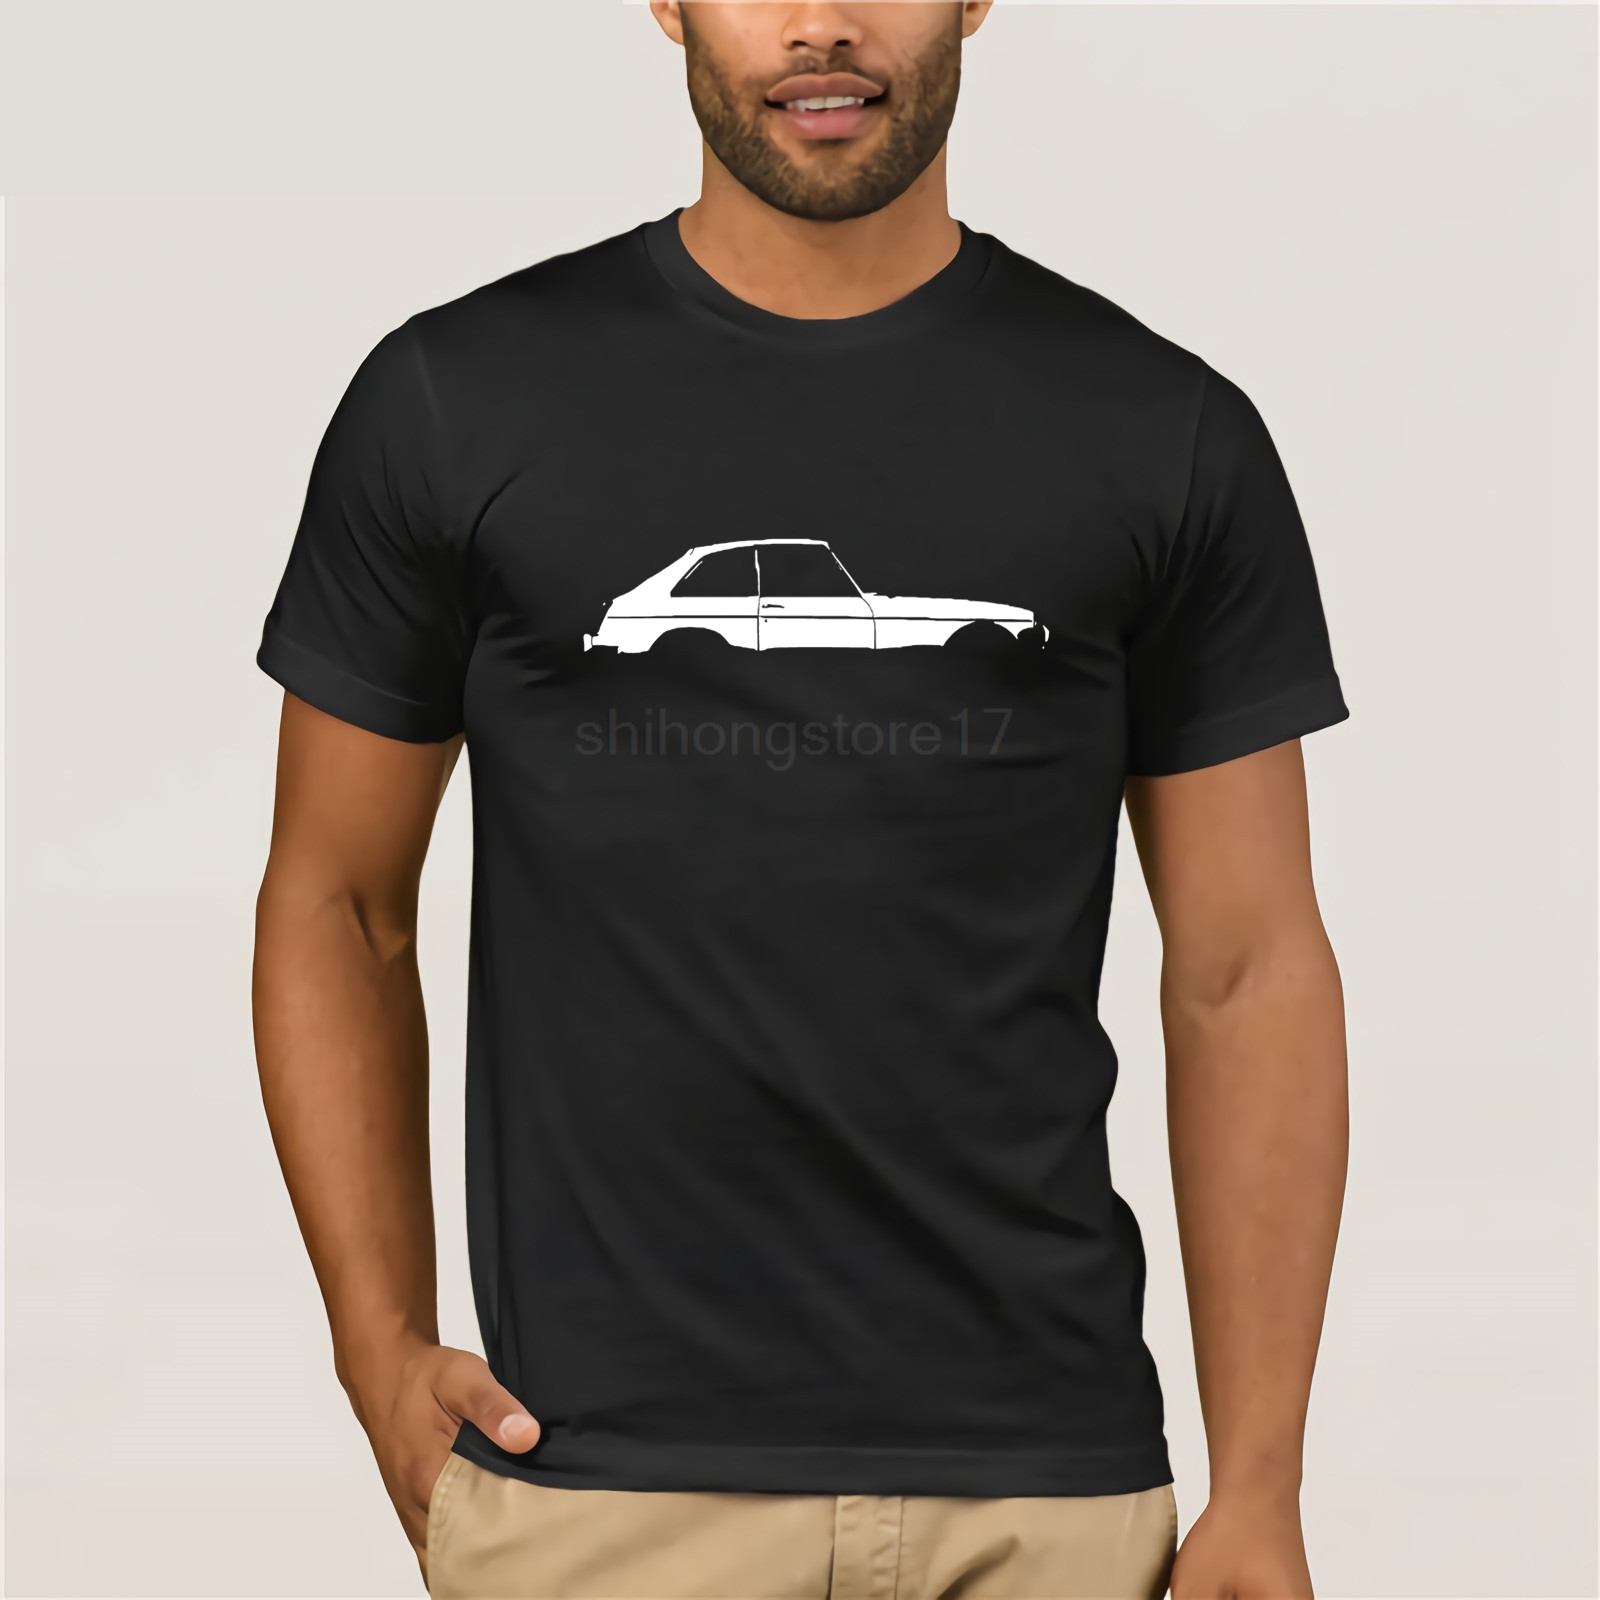 2019 Hot sale Summer Style MG mgb gt <font><b>V8</b></font> <font><b>t</b></font> <font><b>shirt</b></font> gift dad present car classic personalised Funny Tee <font><b>shirt</b></font> image